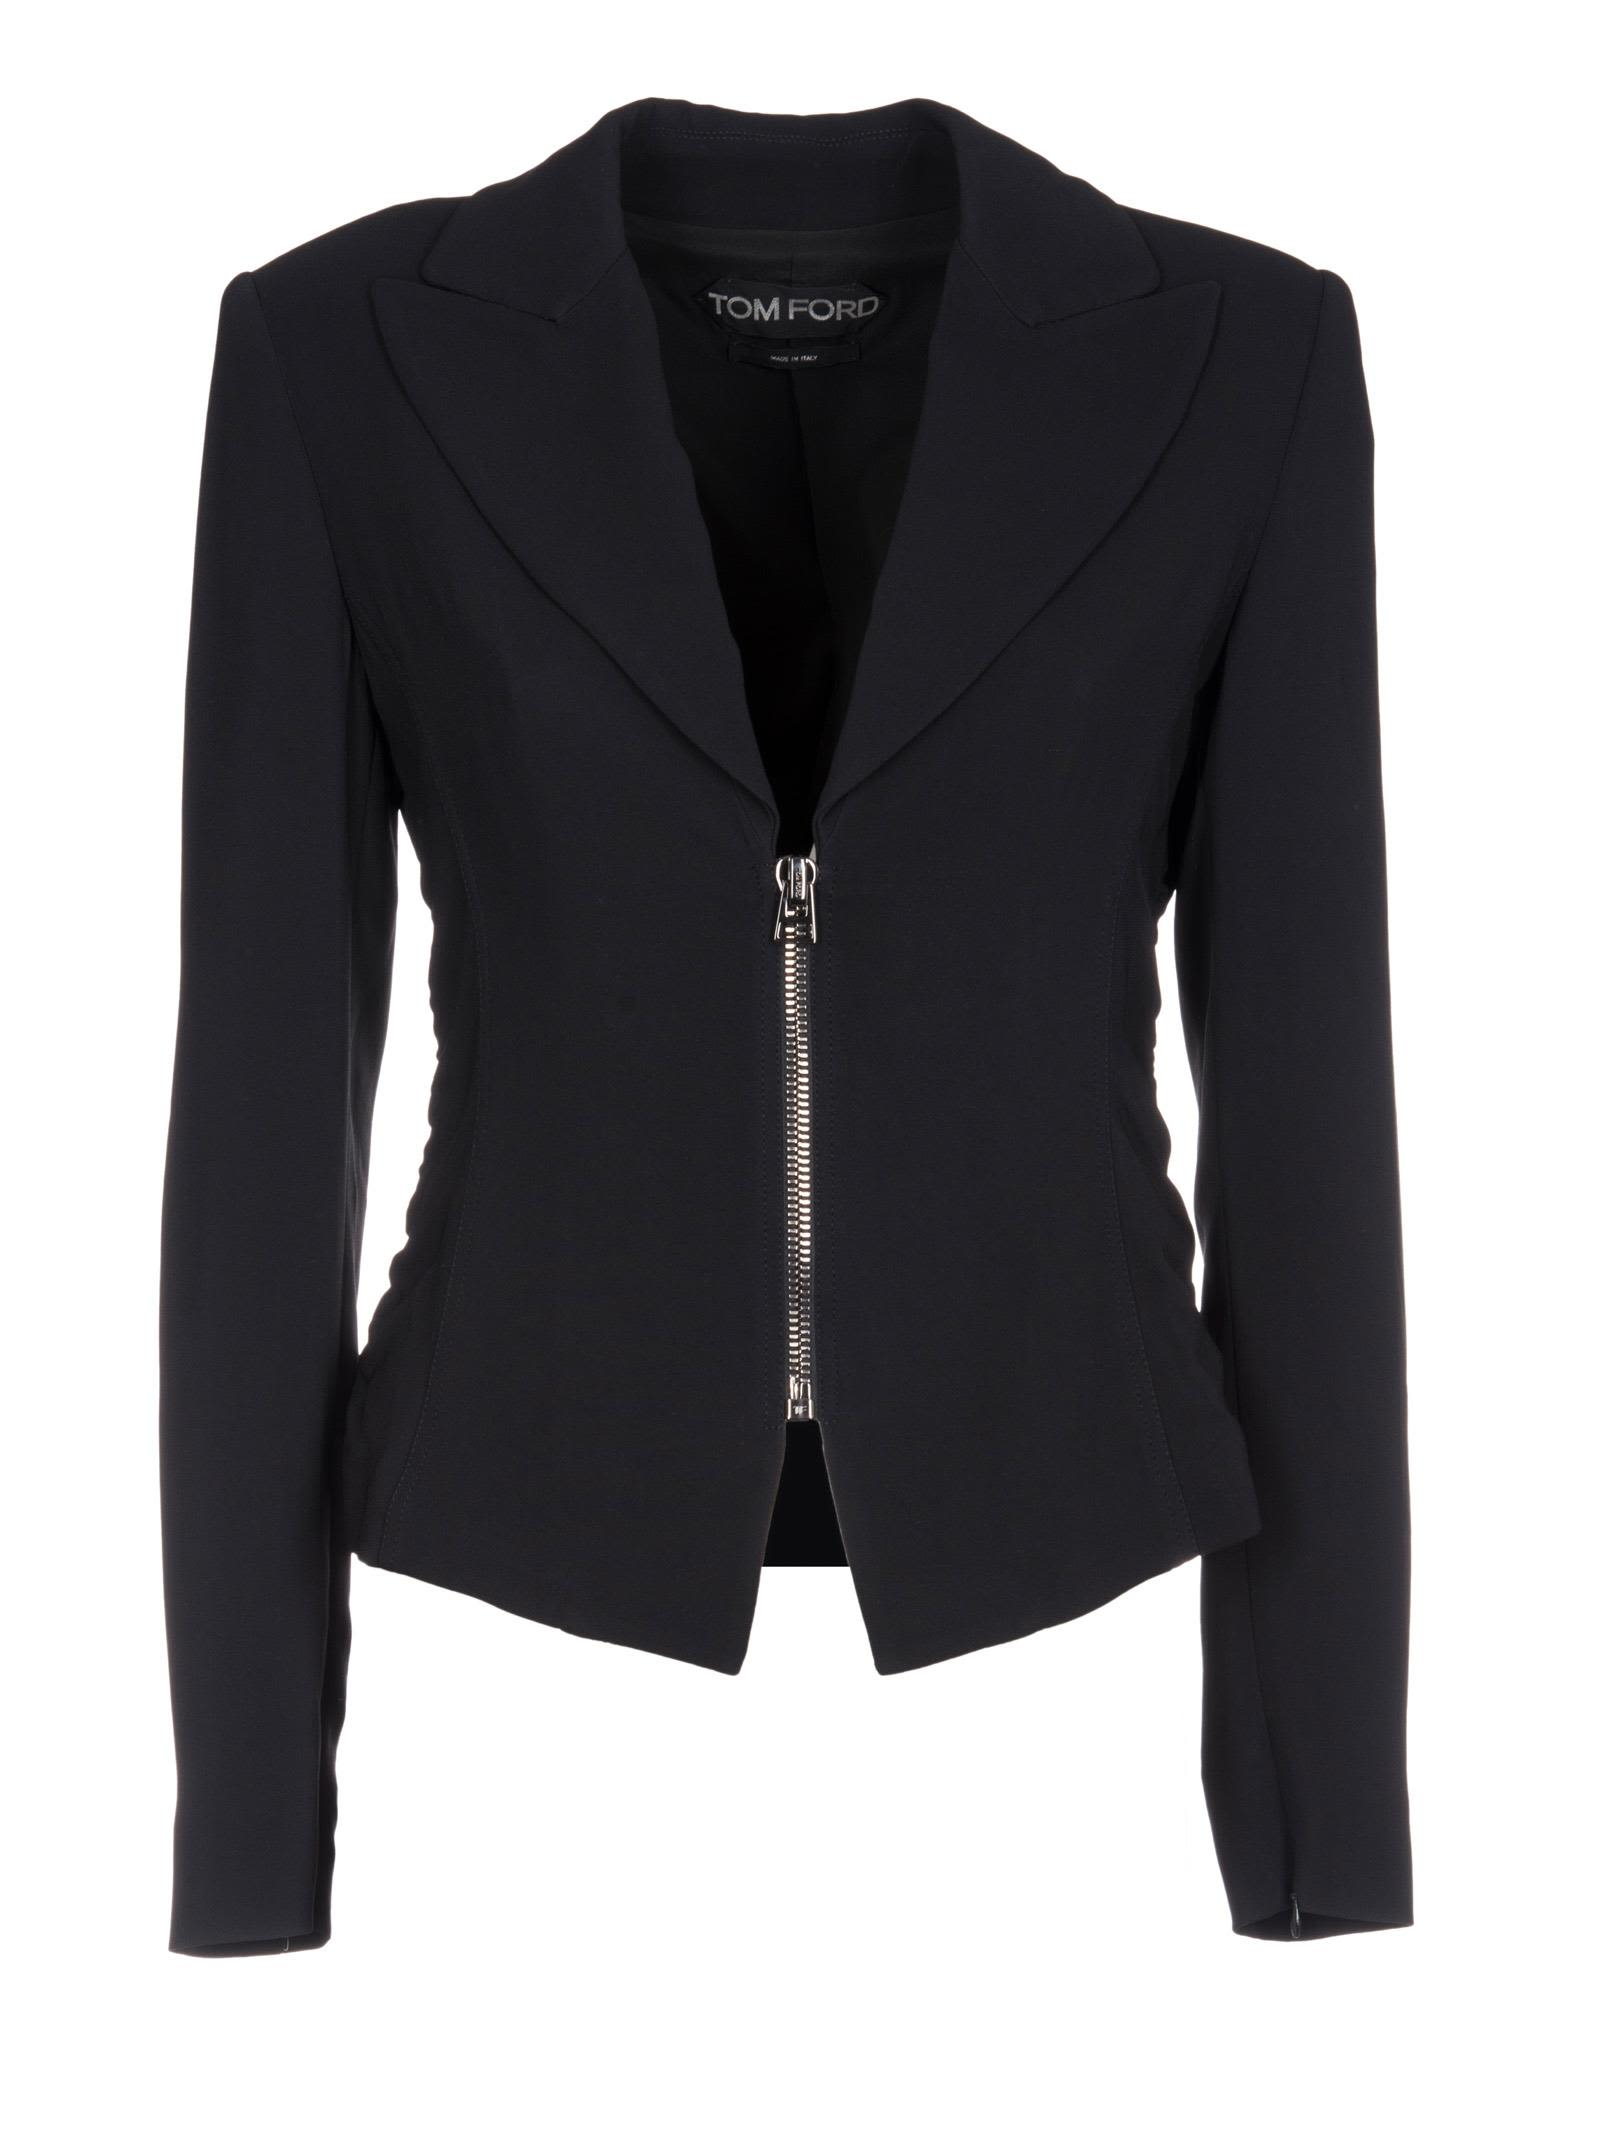 Tom Ford Zipped Fitted Blazer